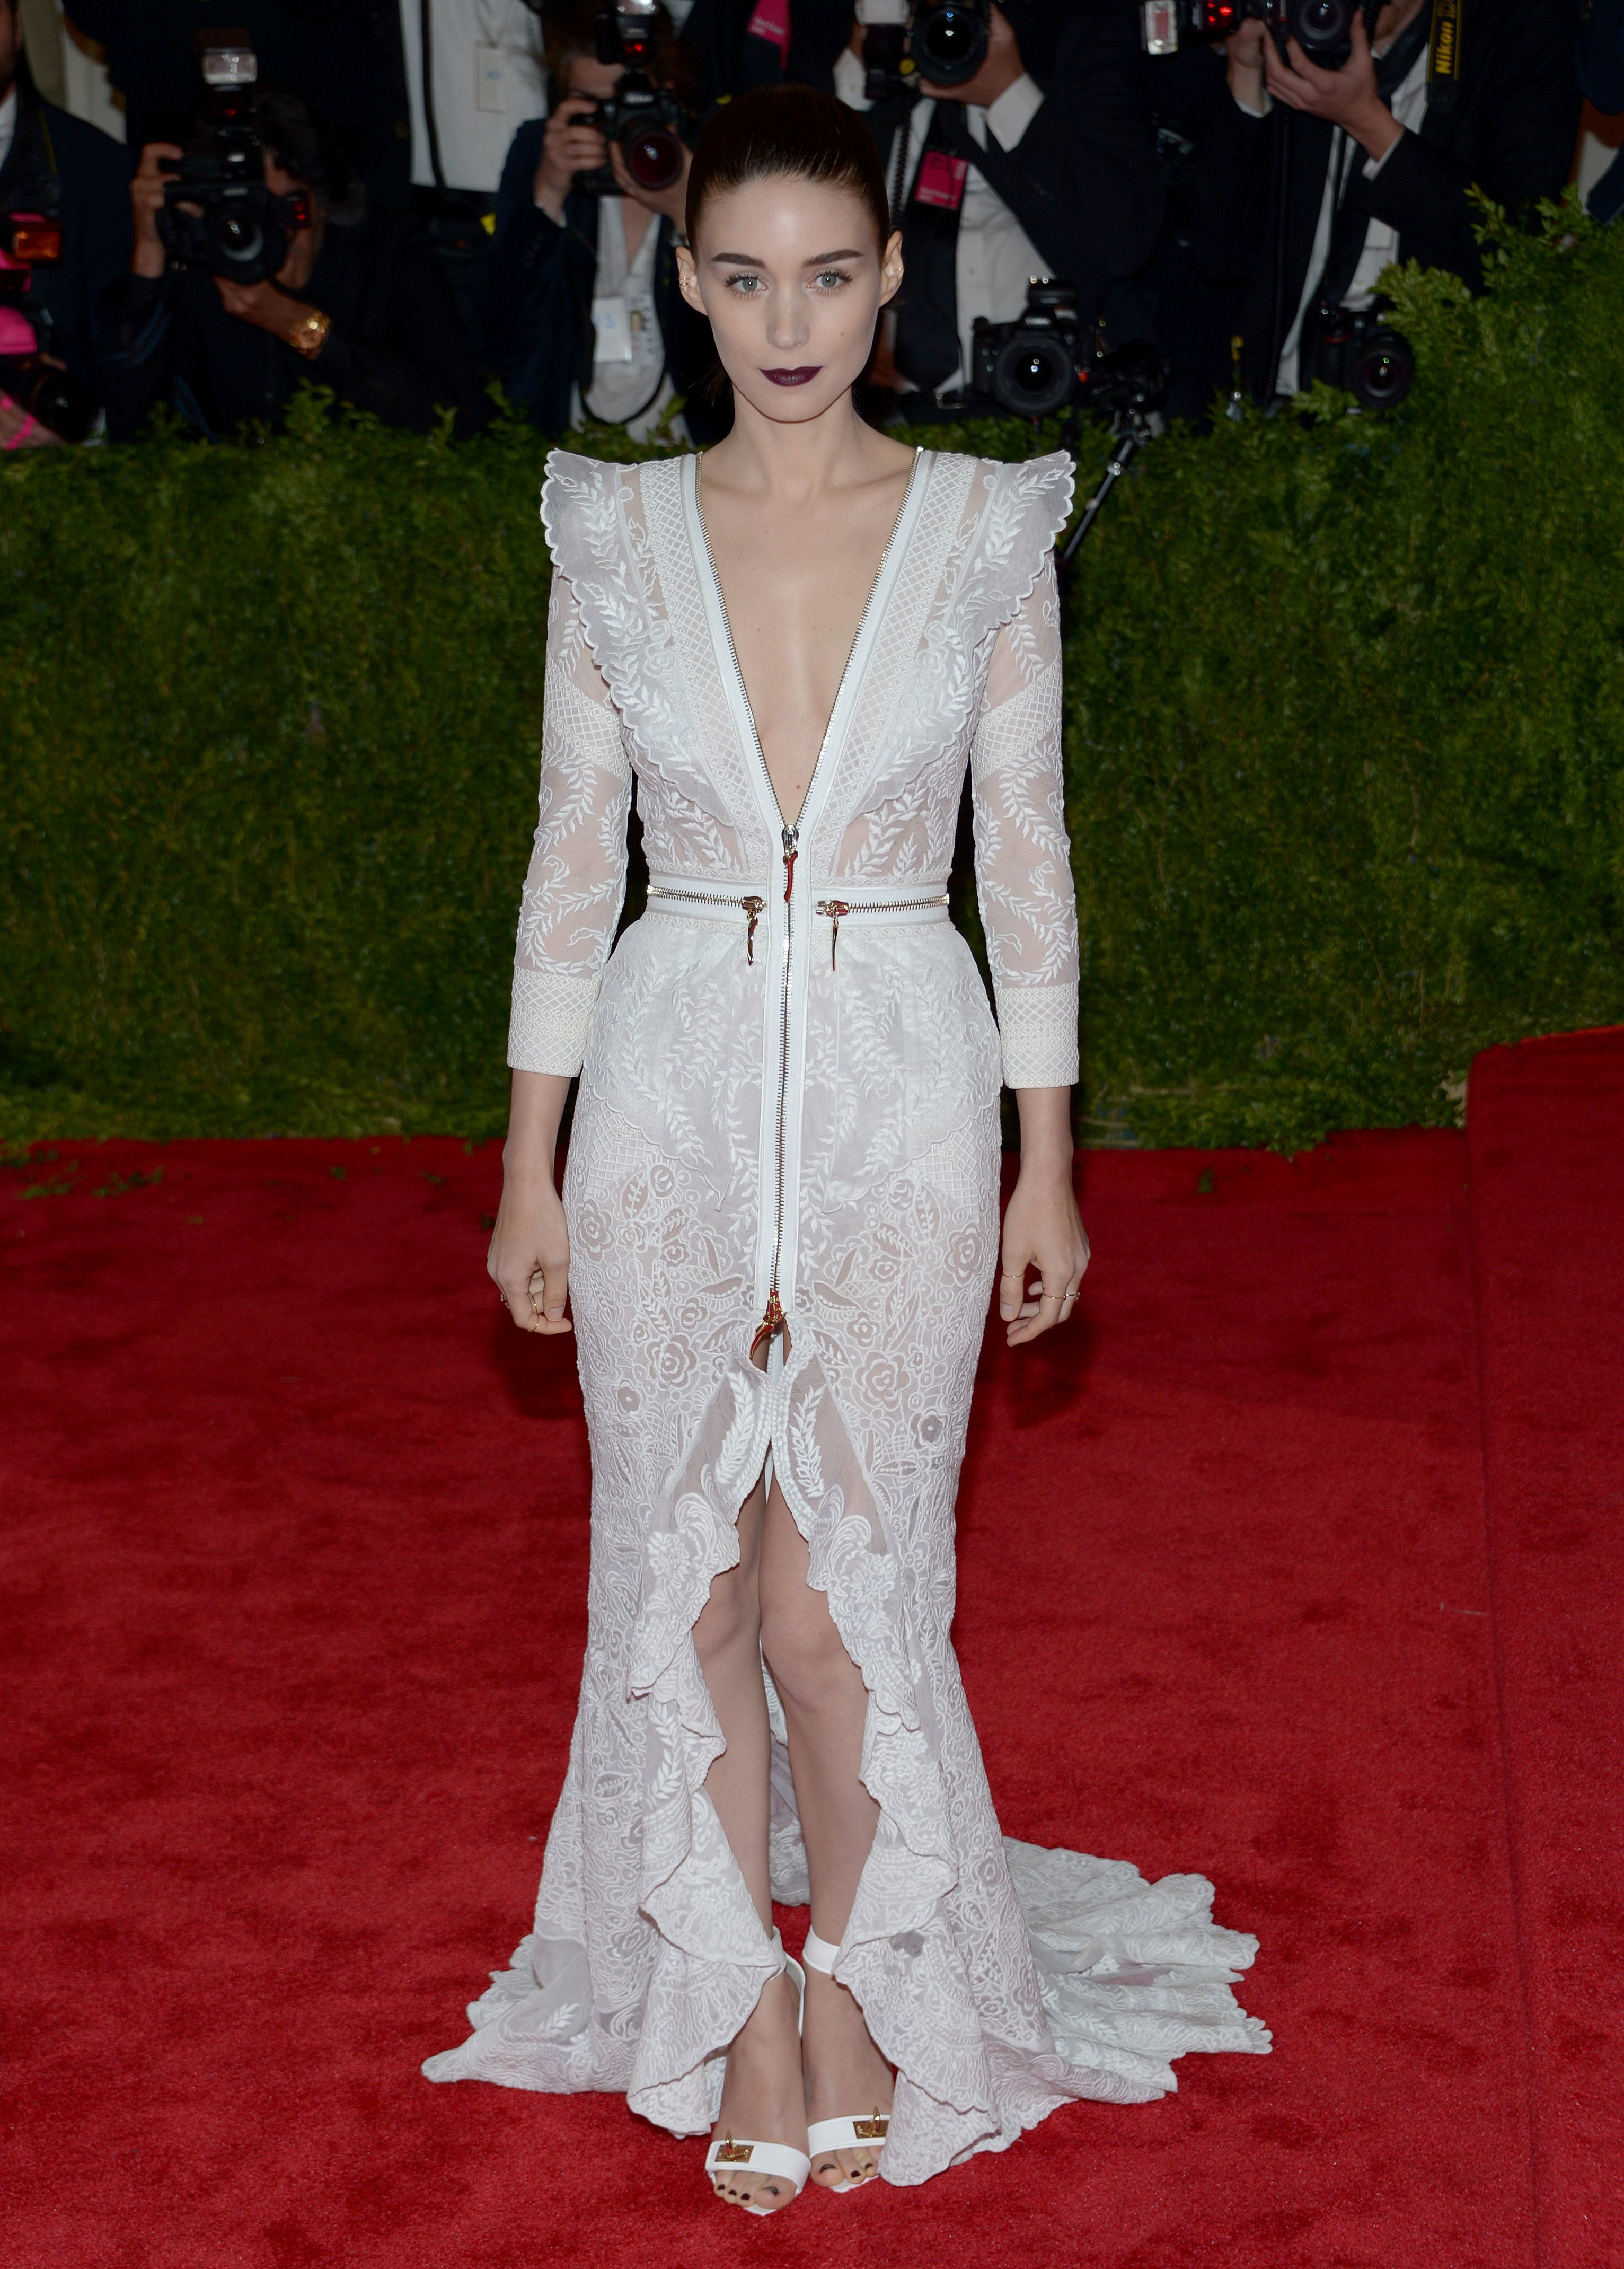 Rooney Mara attends the Metropolitan Museum of Art's Costume Institute Gala in New York City on May 6, 2013.